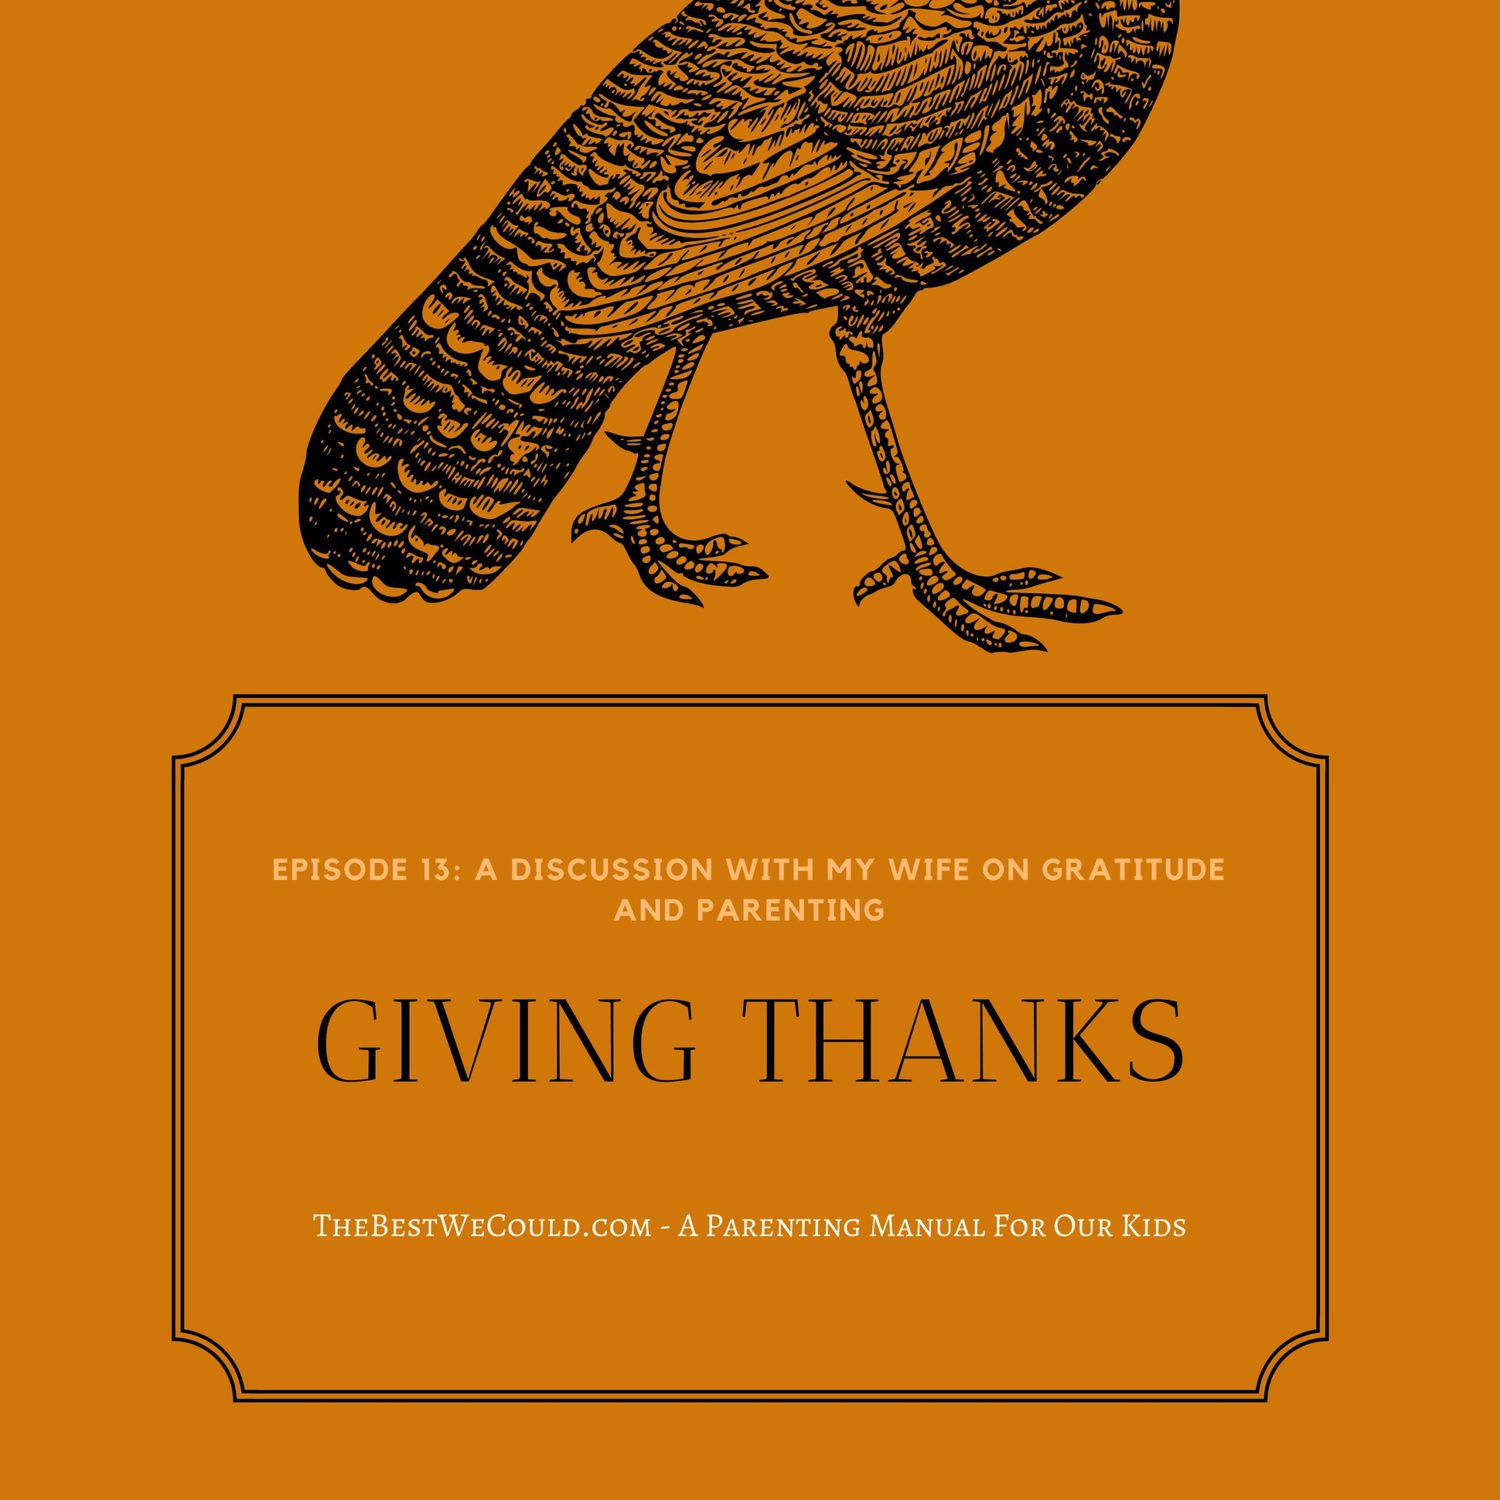 Episode 13: A Thanksgiving Discussion On Parenting and